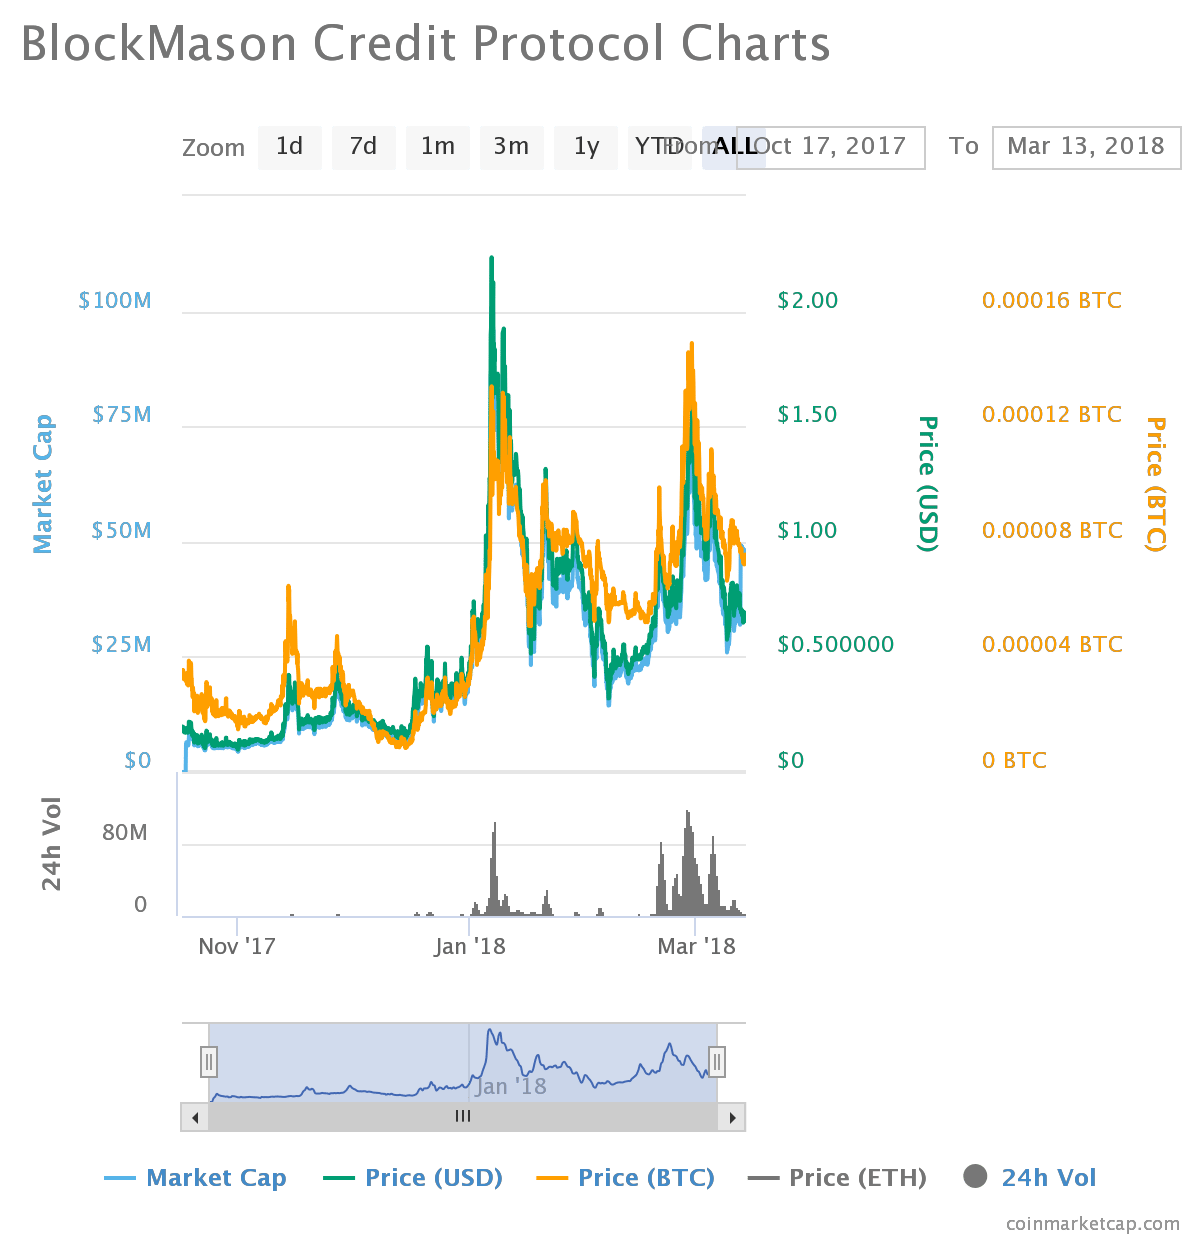 chart1 4 - Binance Coin (BNB) - Price is Surging